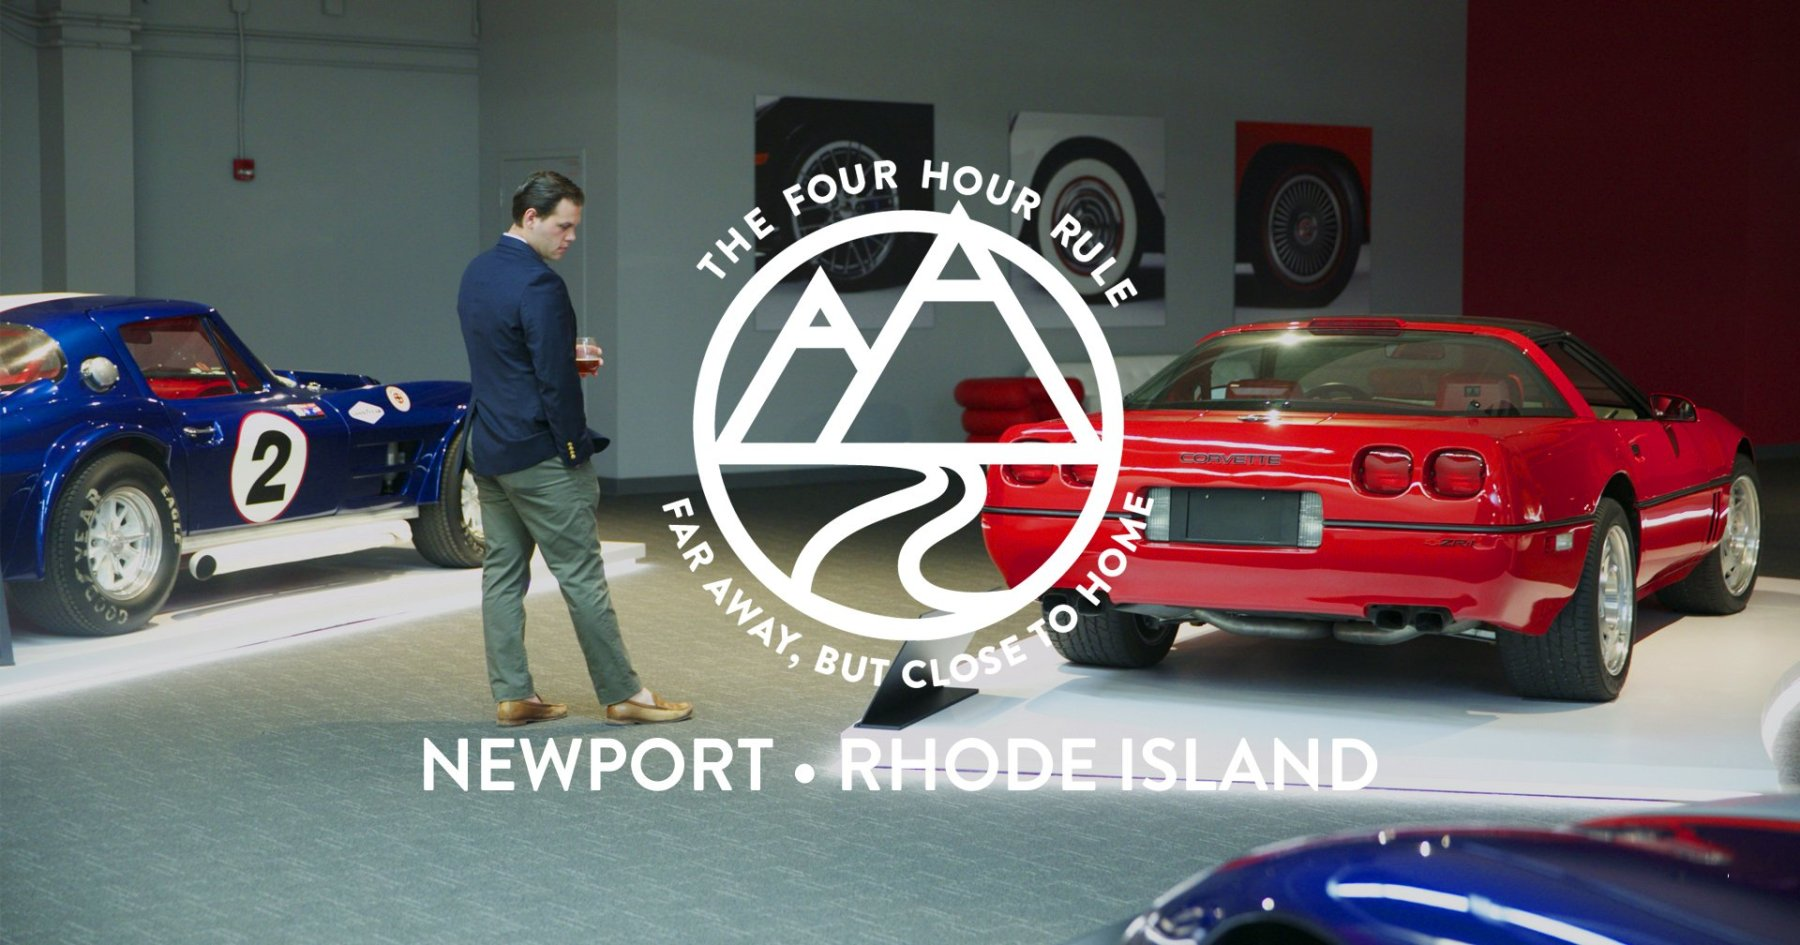 4-Hour Rule: Rhode Island